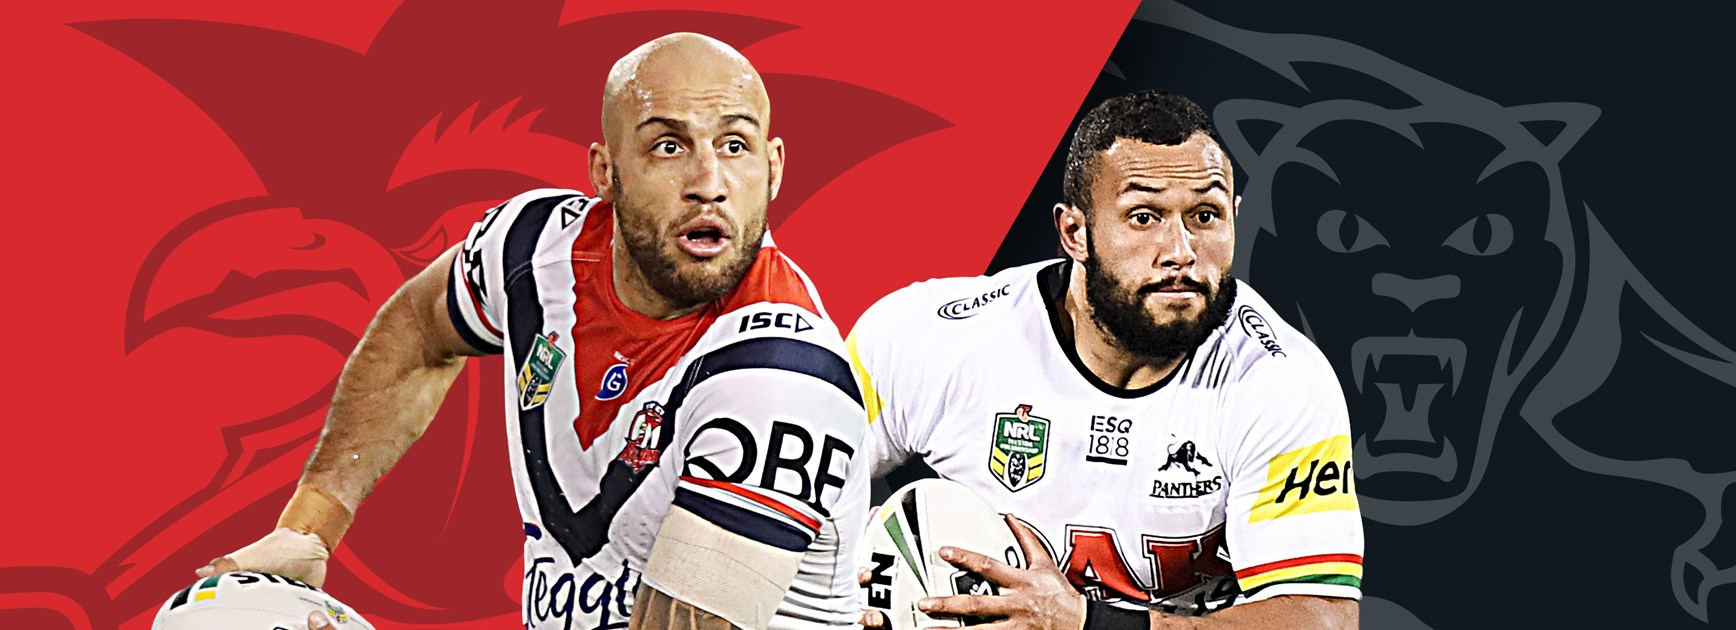 Roosters v Panthers: Radley starts; Panthers enter post-Wallace era